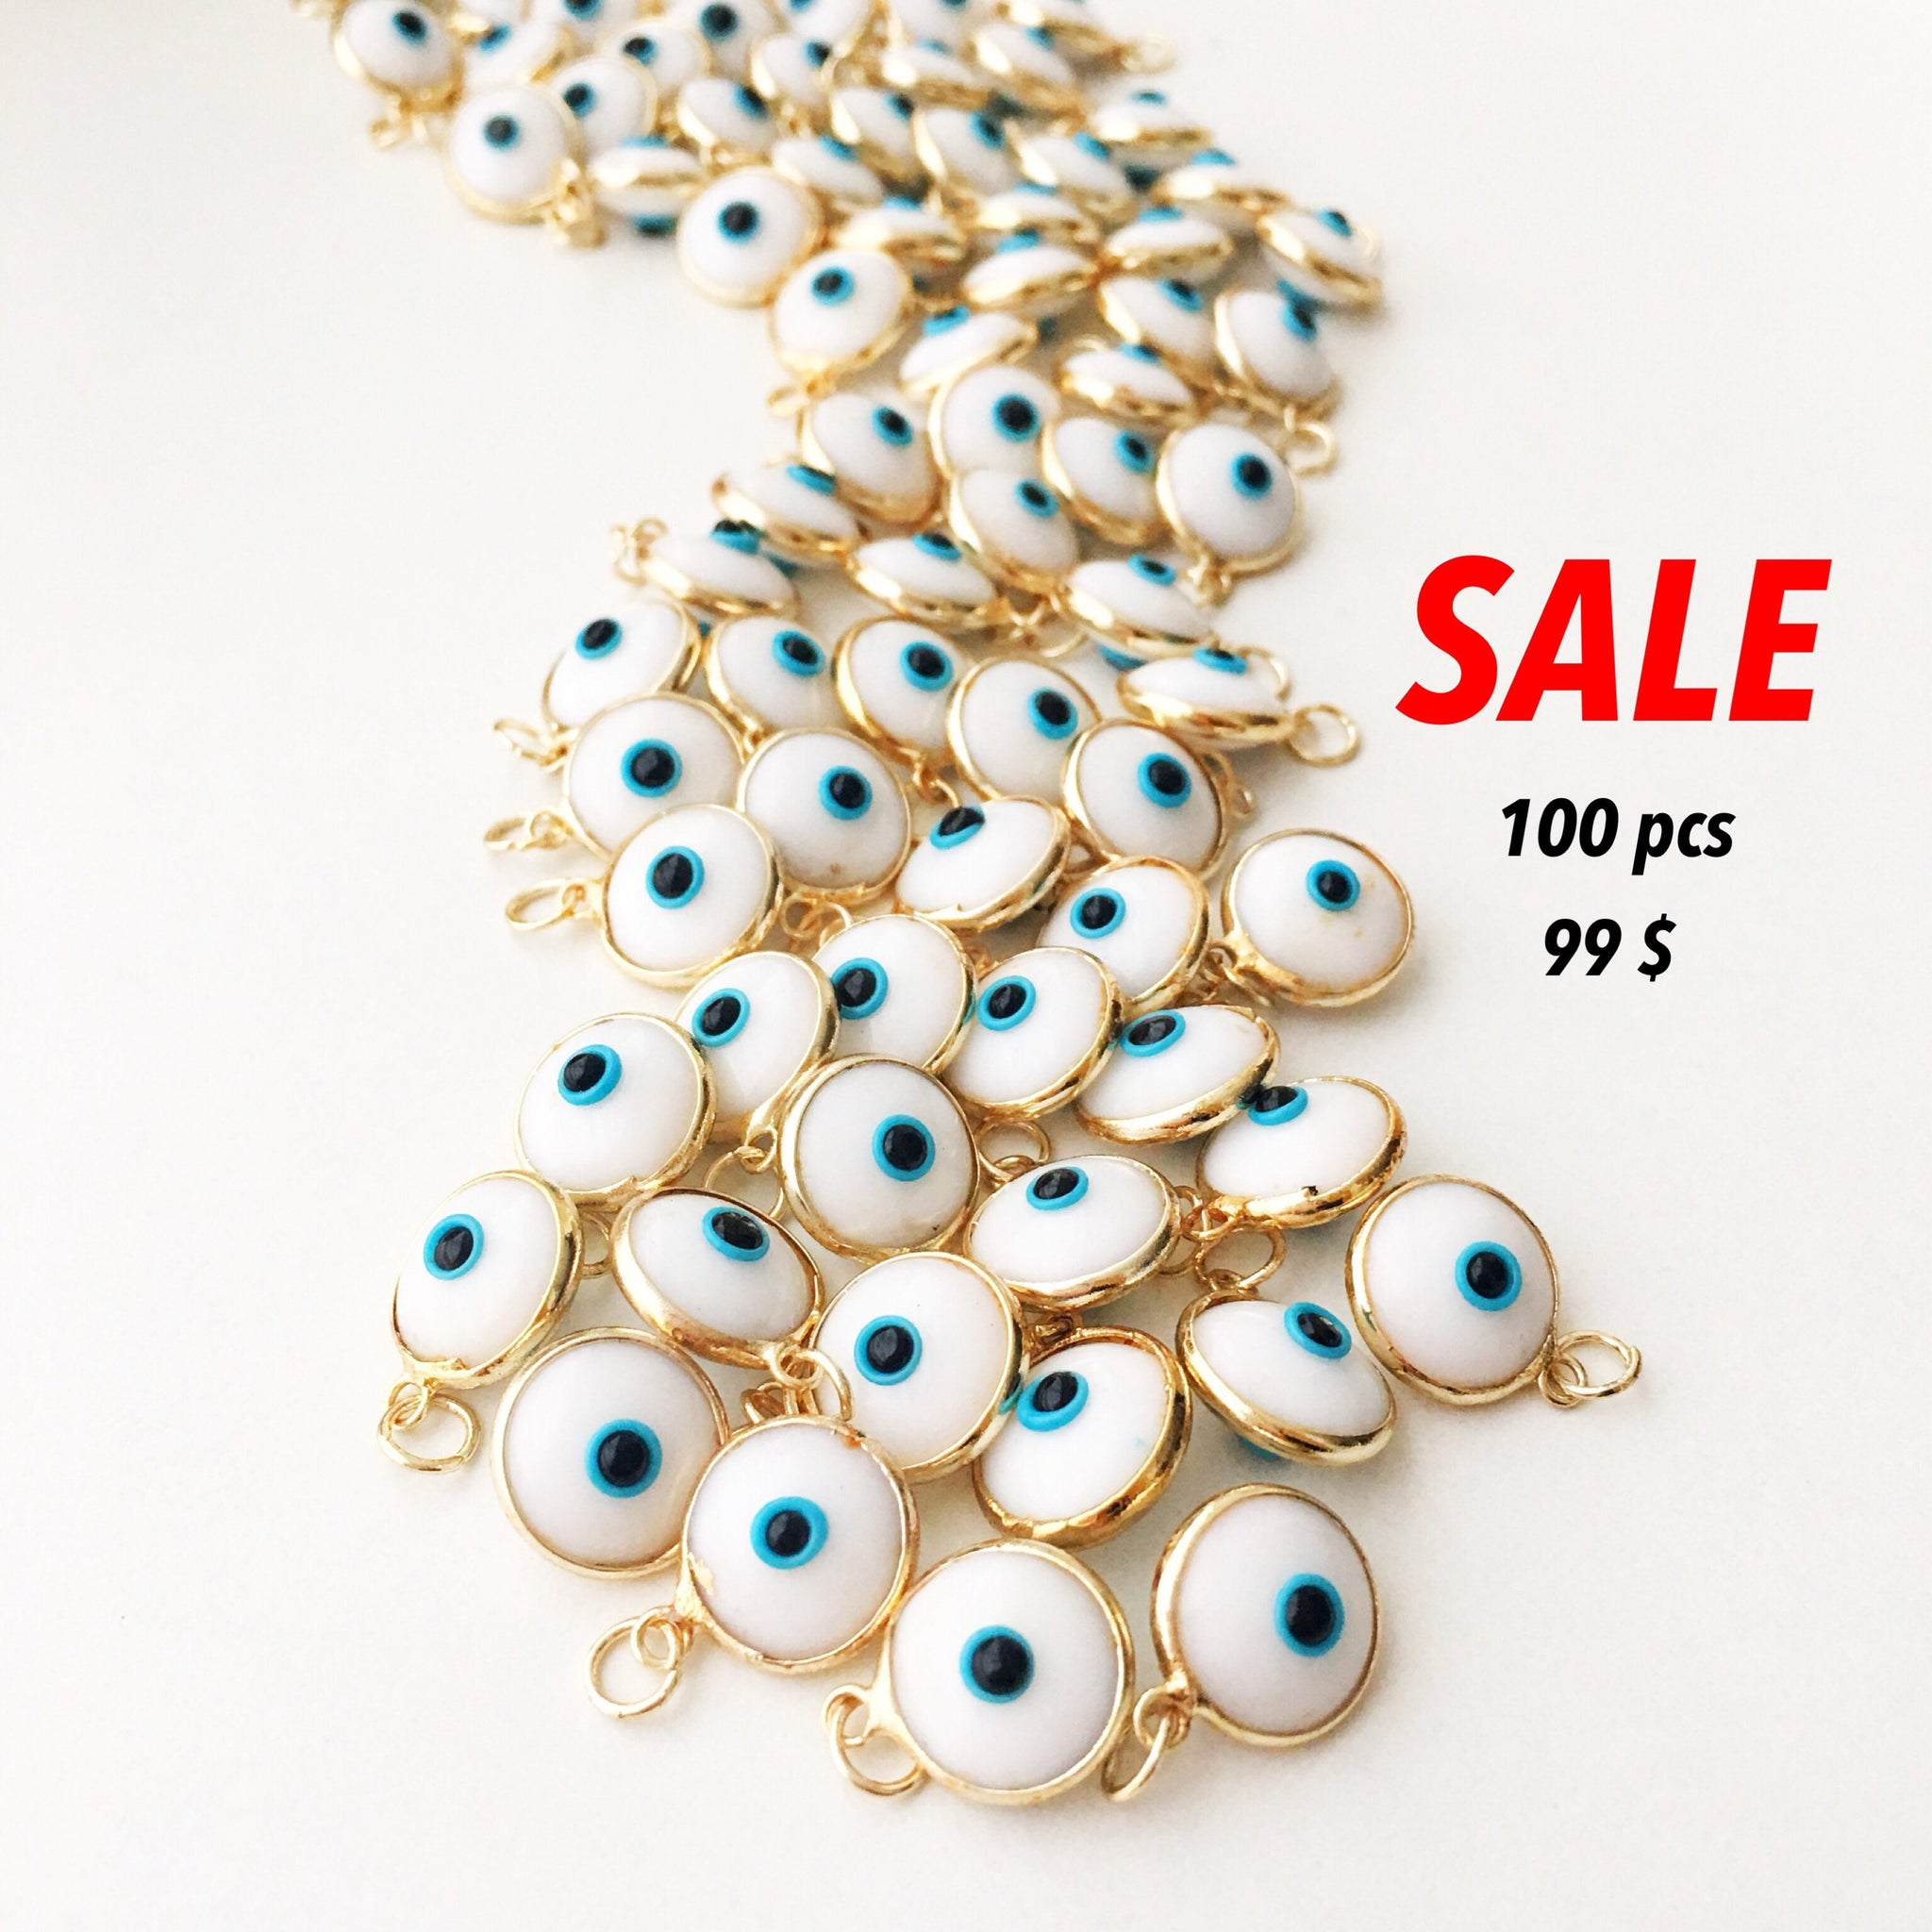 evil set necklace fullxfull bulk boncuk baby products blue sale nazar beads gold qijx eye il turkish big charm for in